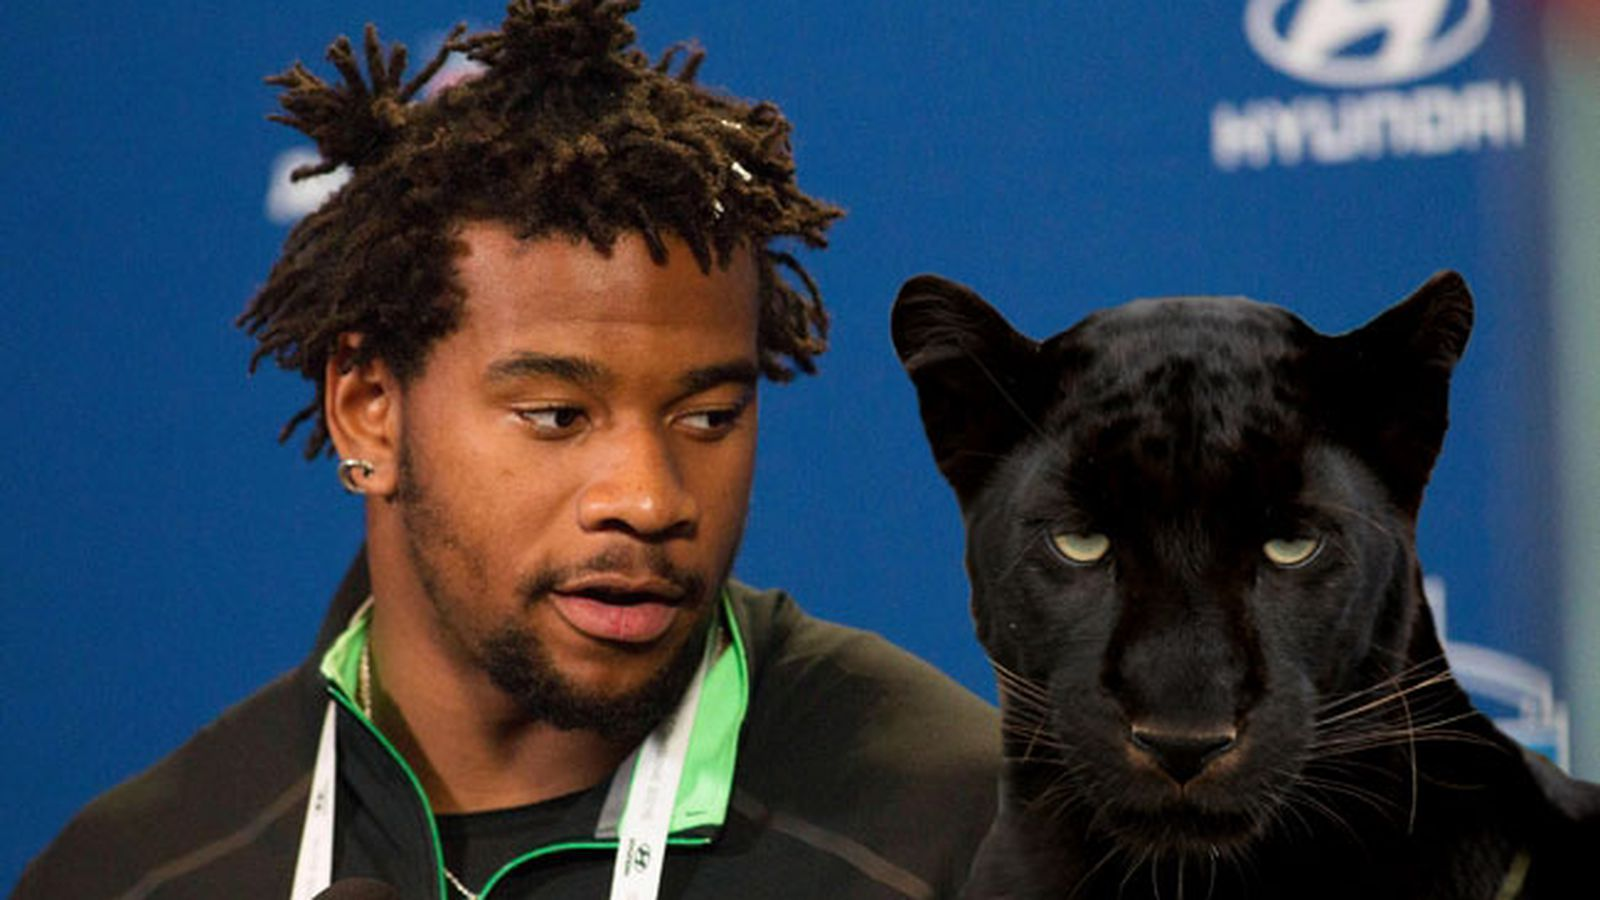 Robert Nkemdiche's to-do list: sign rookie contract, treat family, buy pet panther ...